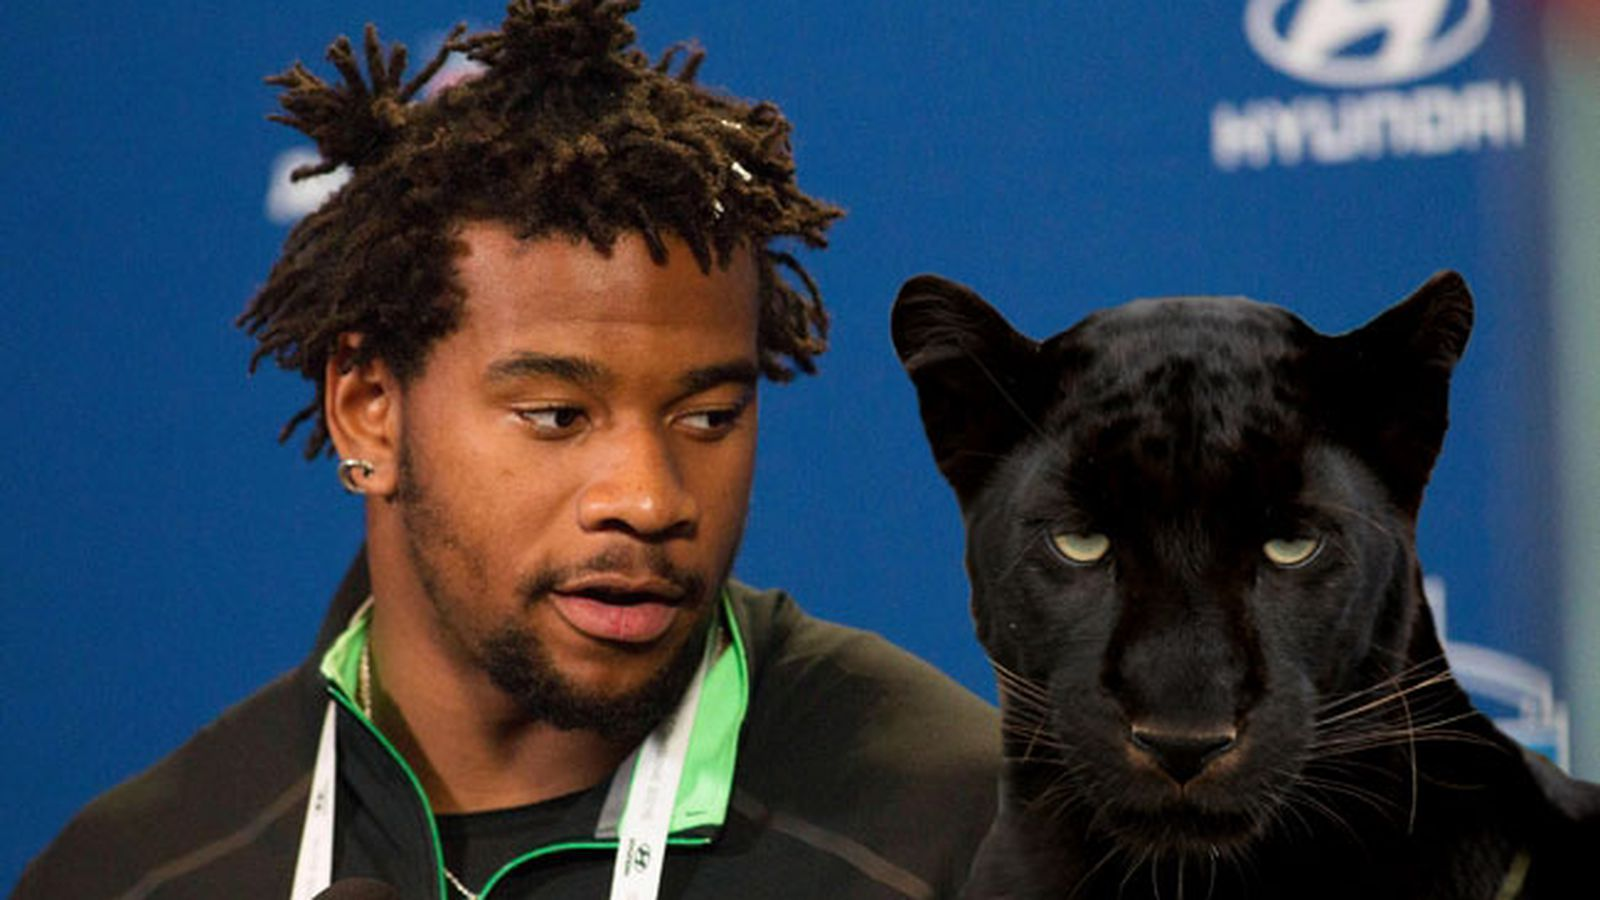 Robert Nkemdiche's to-do list: sign rookie contract, treat family, buy pet panther ...